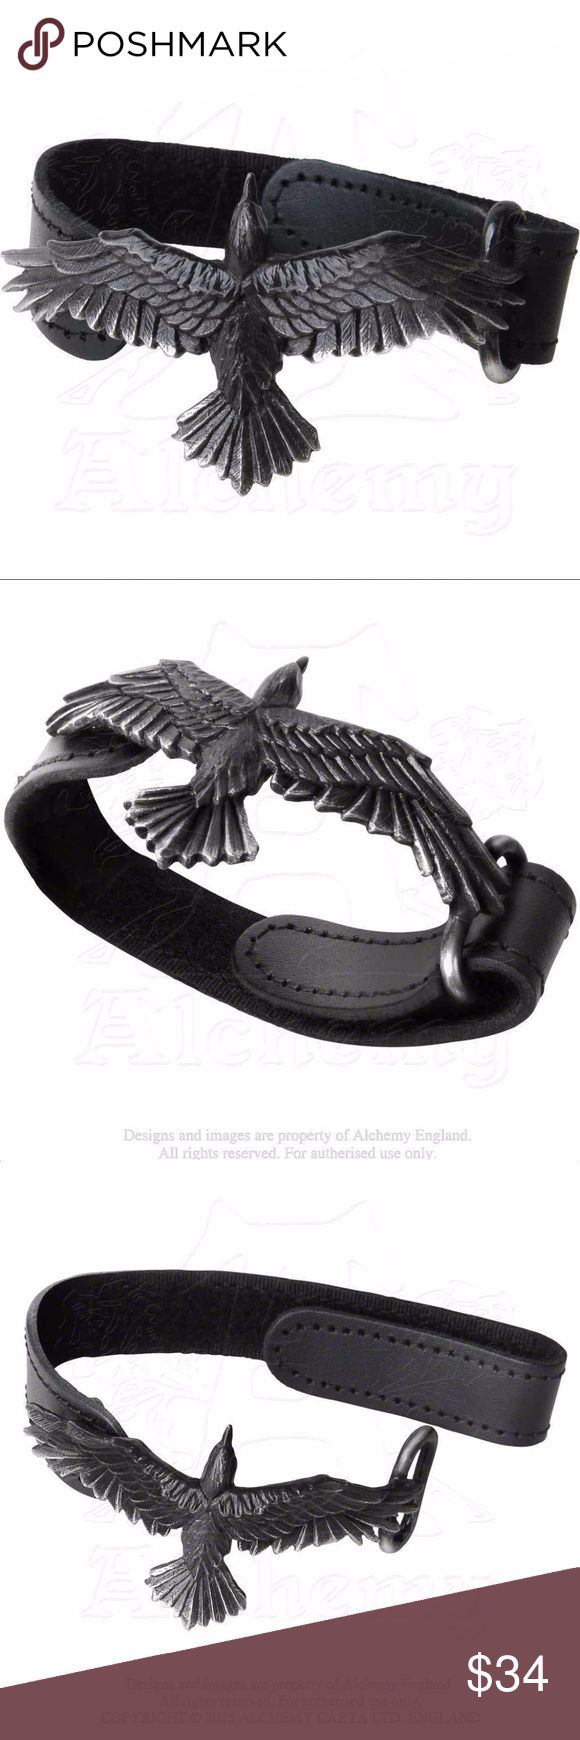 "Raven leather strap bracelet Alchemy Gothic Unisex Black Consort Odin's Raven Bracelet - Alchemy Gothic Leather Strap Bracelet. Unisex design, for men and women. Raven measures 3"" length x 1 3/8"" width. Leather strap measures 8 1/2"" length x 3/4"" width. Handcrafted by ALCHEMY GOTHIC in the United Kingdom. Adjustable Leather Strap Bracelet with velcro fastening. This black leather wrist strap has a velcro-adjustment fastening, supporting a black pewter, spreadeagled raven with highlighted…"